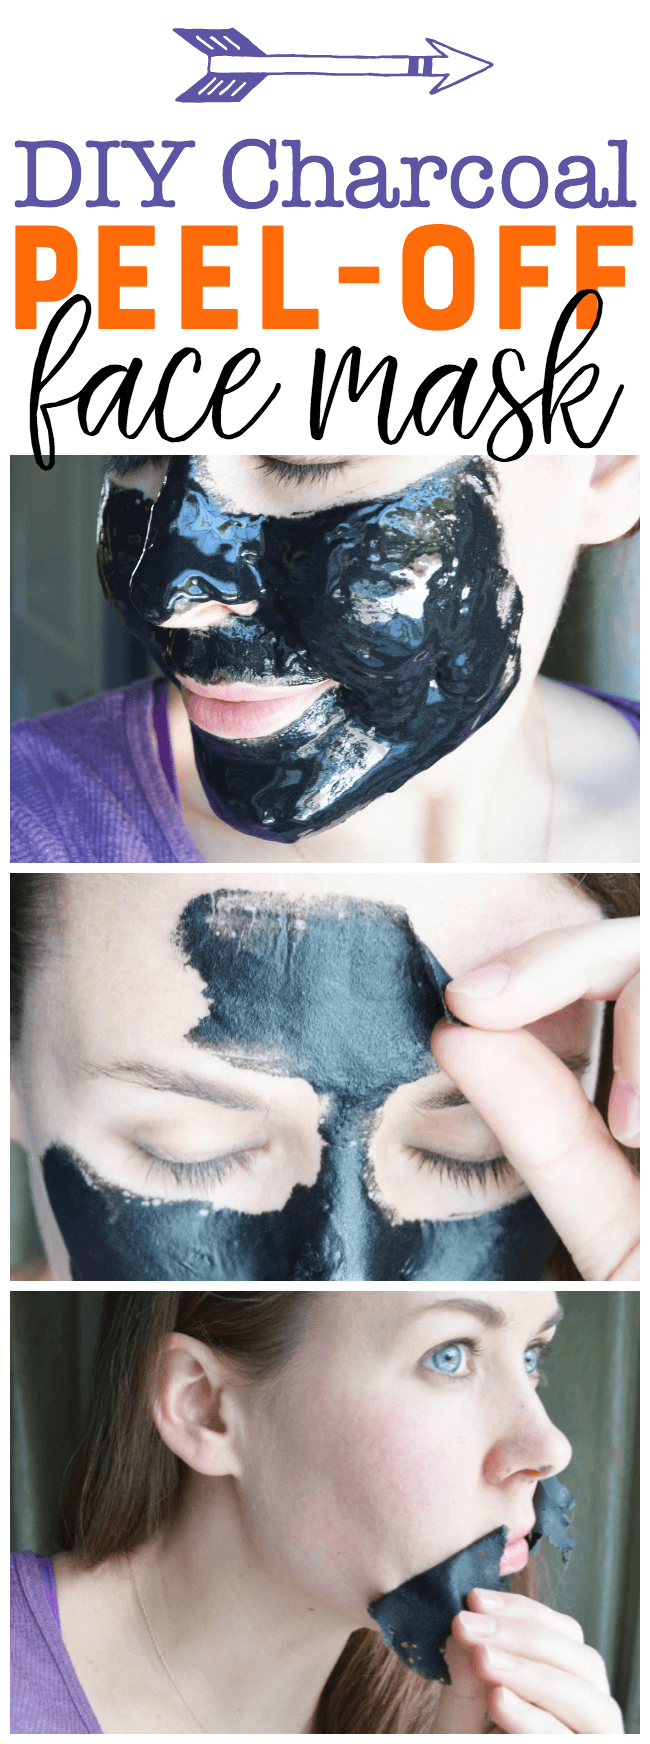 The other ingredients you'll need for this diy charcoal face mask peel off are bentonite clay and unflavored gelatin. These three ingredients may look simple but this mask is really effective.